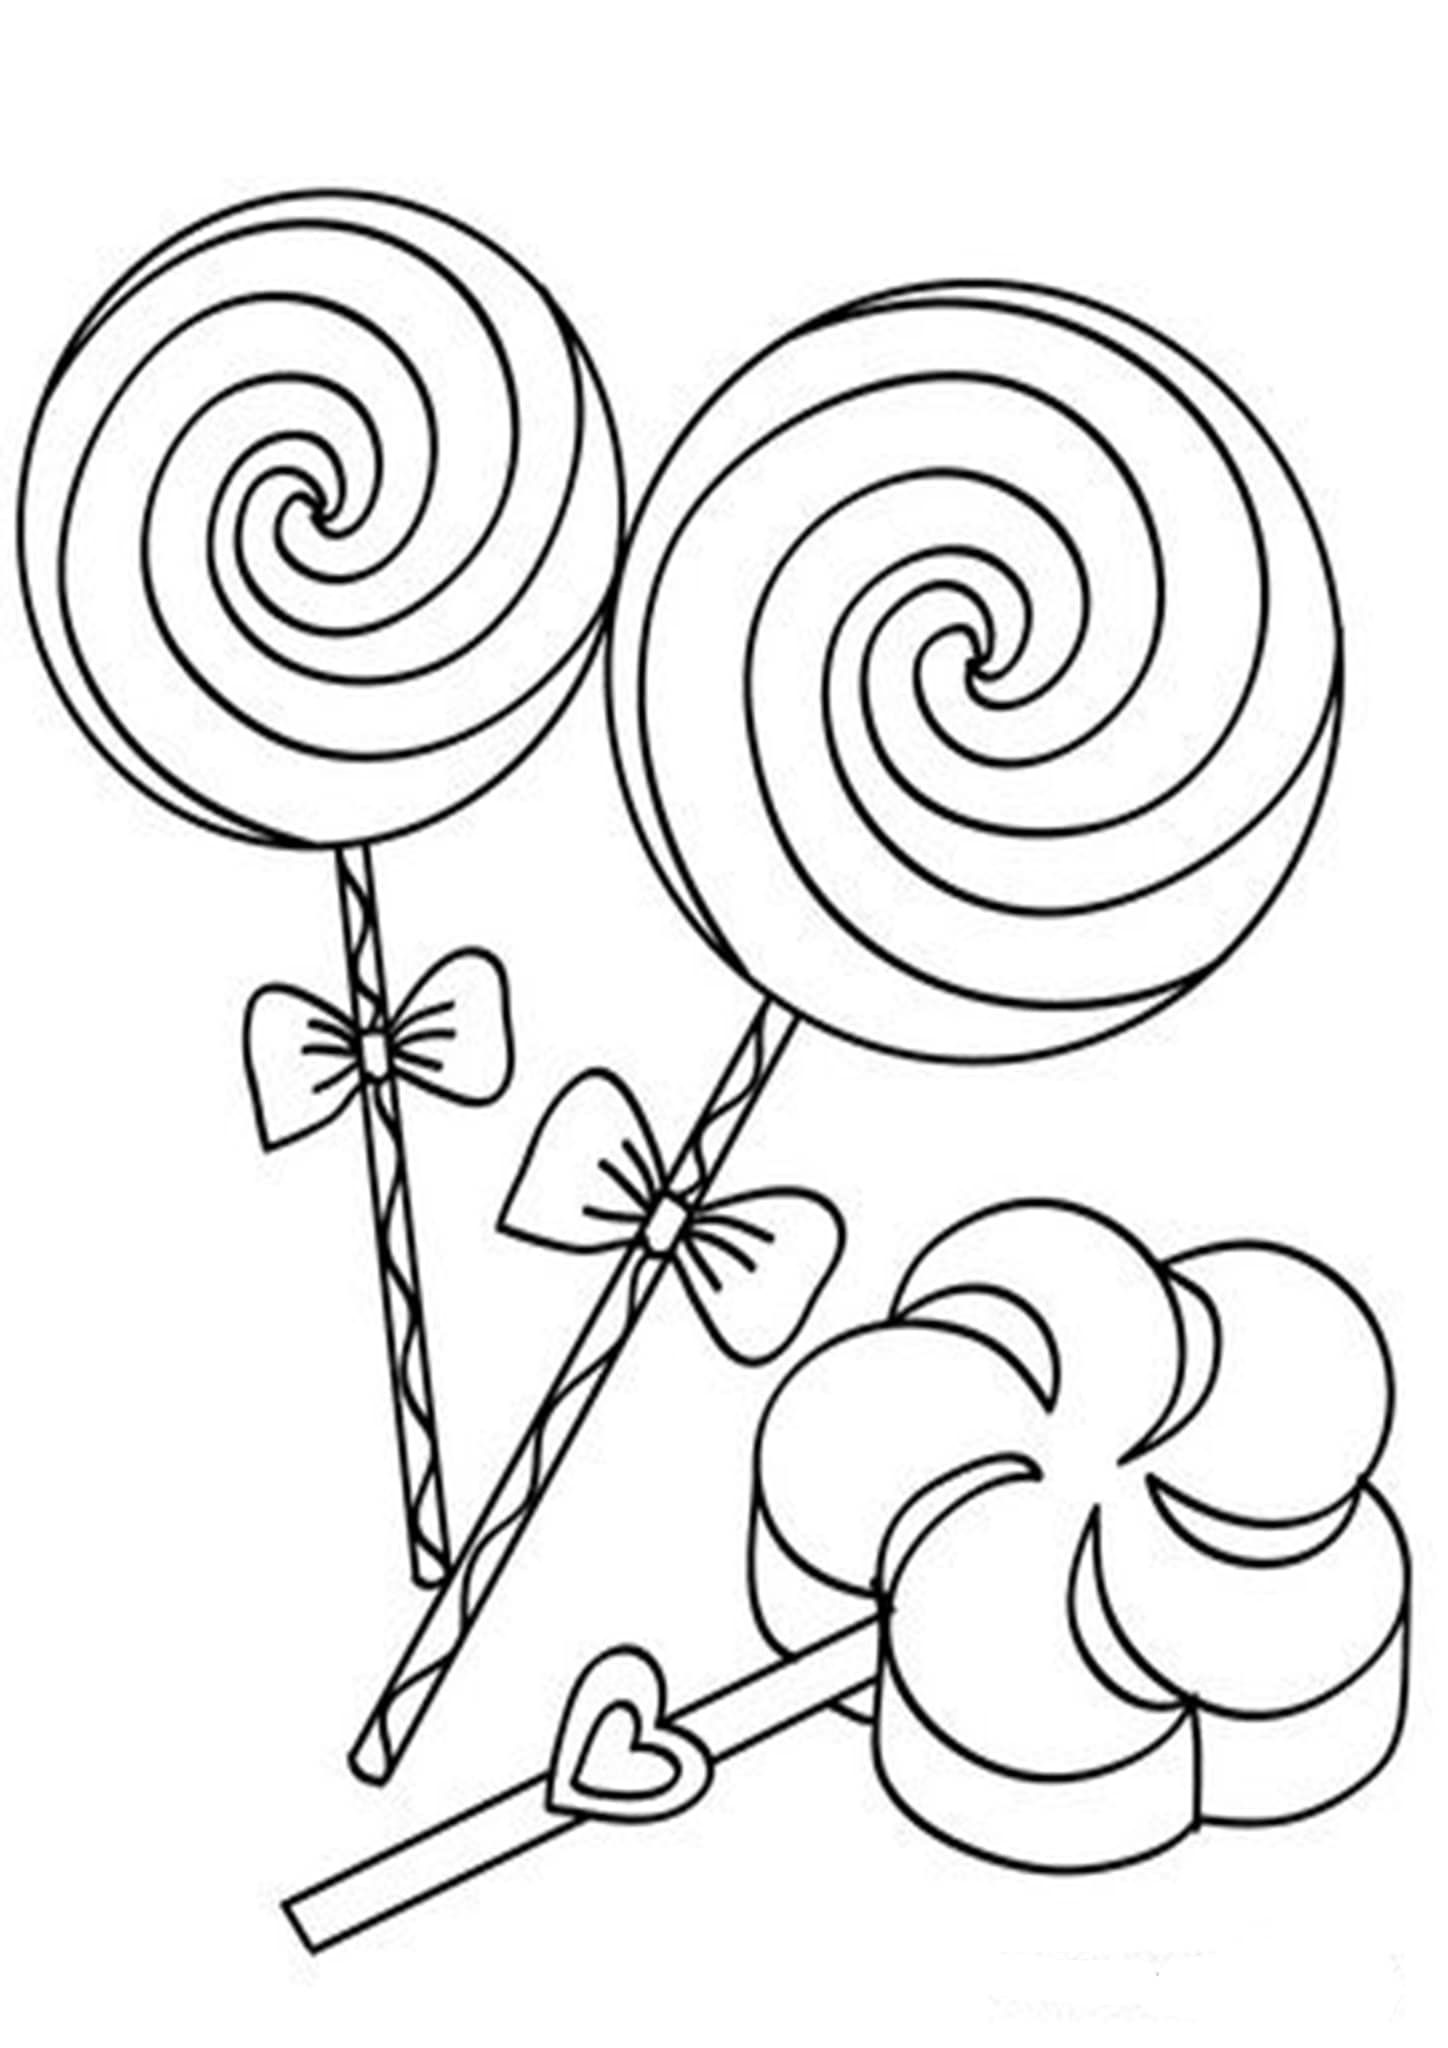 Pin By Zilvi On Kunstzinnig In 2021 Candy Coloring Pages Cool Coloring Pages Halloween Coloring Pages